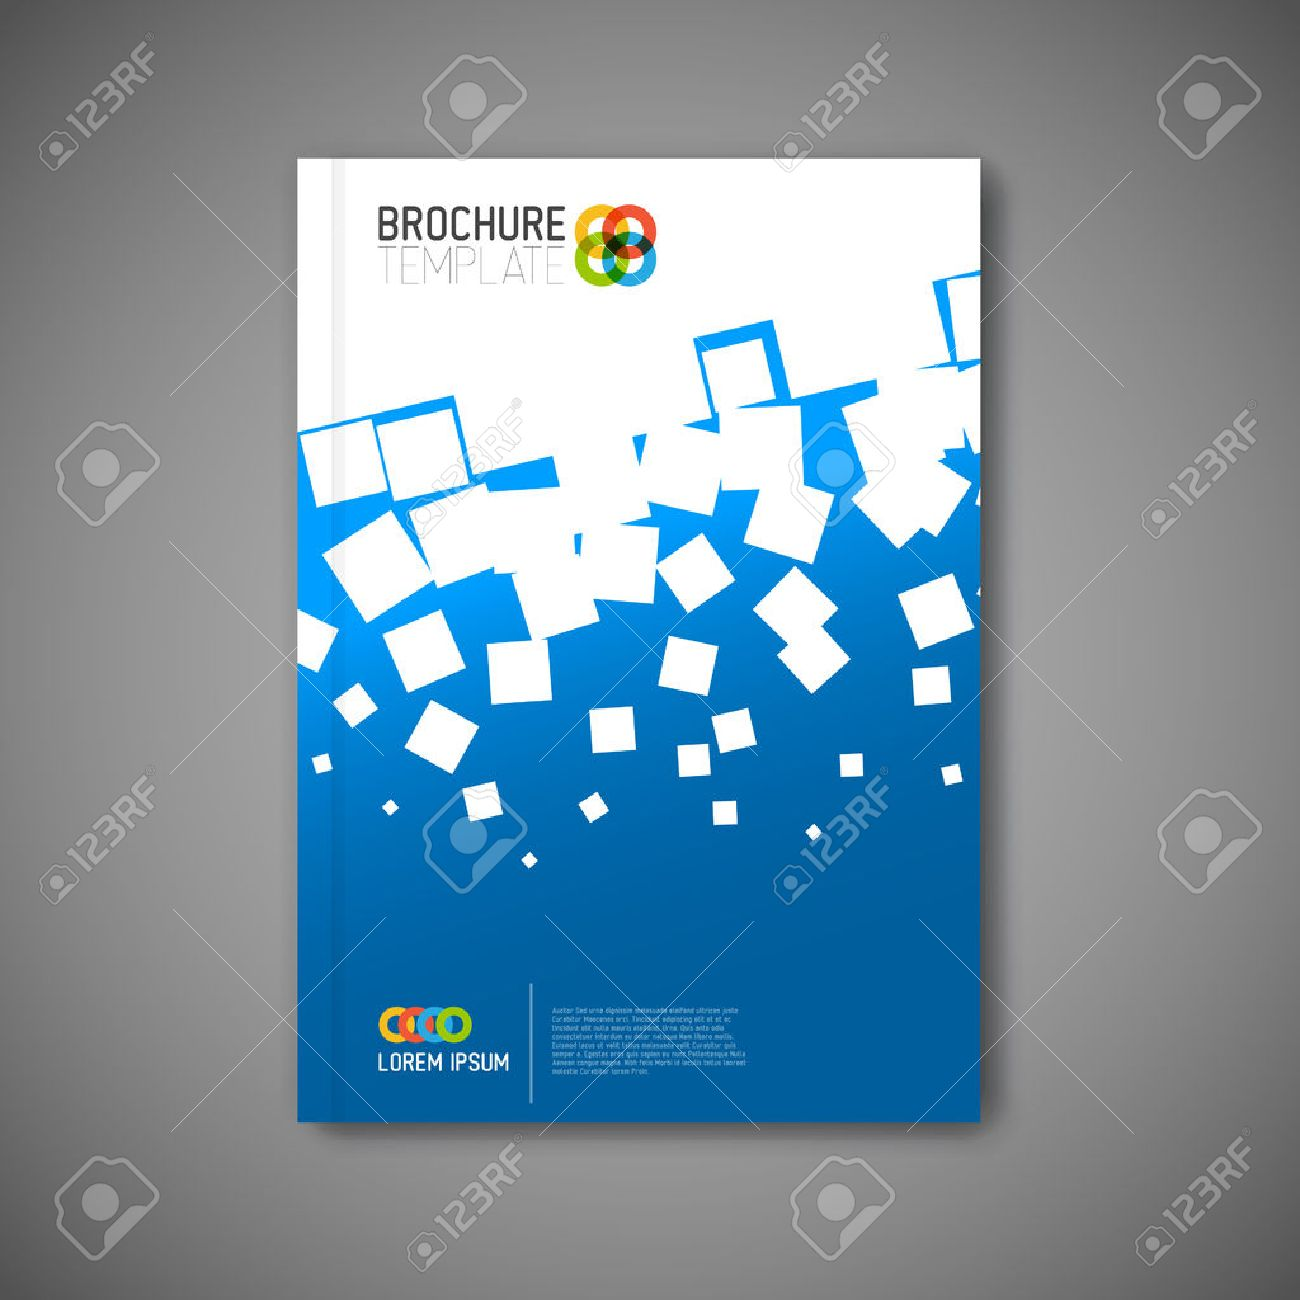 Modern Abstract Brochure, Report Or Flyer Design Template Royalty ...